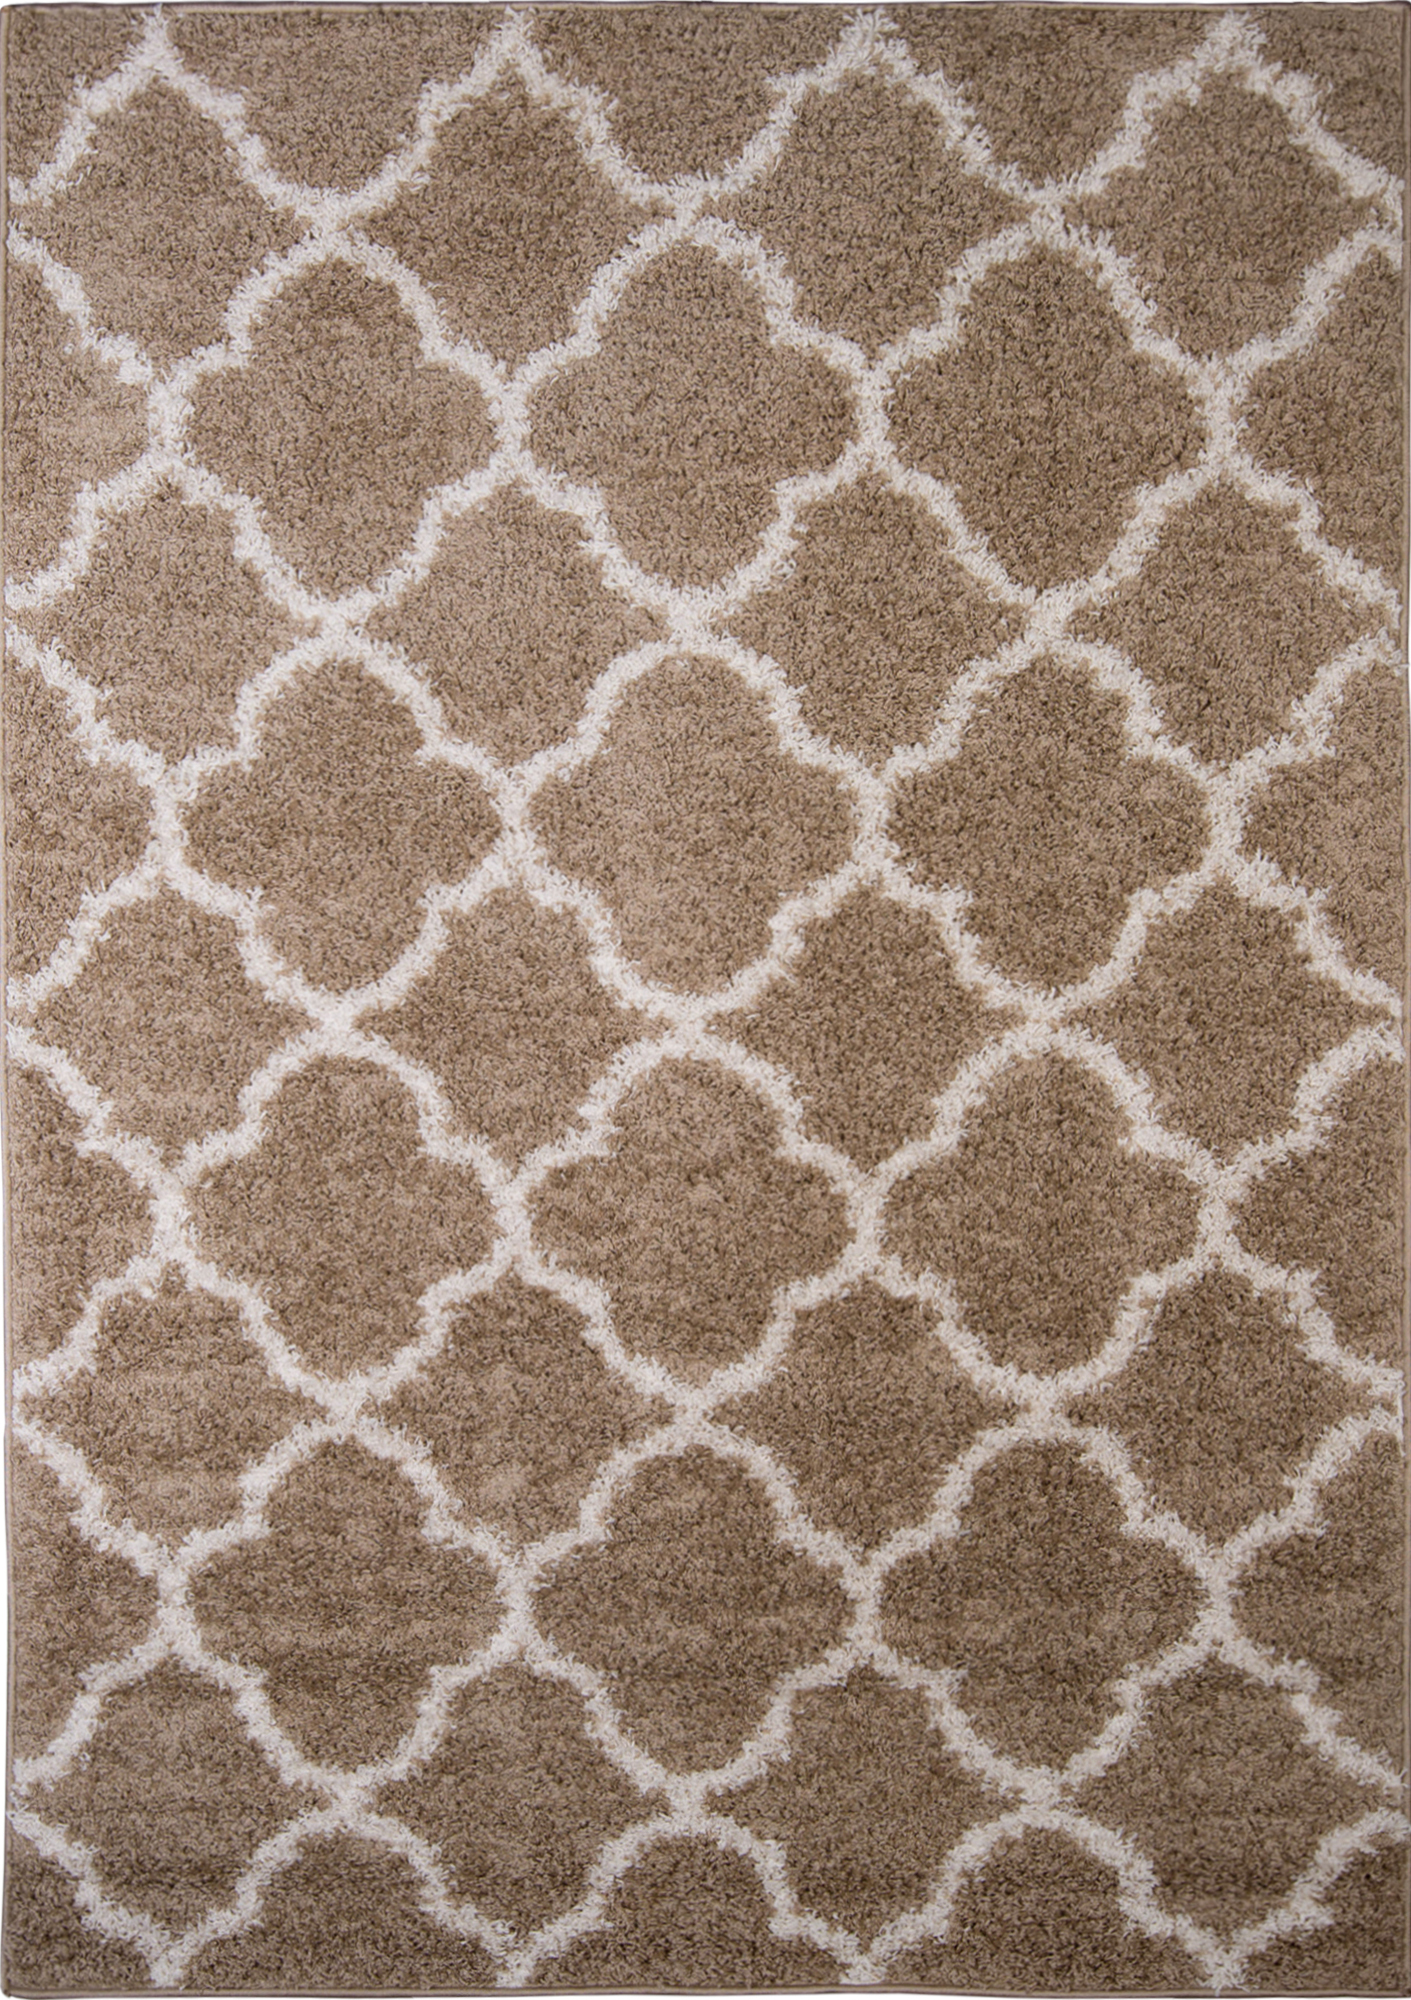 area miller millerhome rug artisan by nicole nm dynamix home product rugs